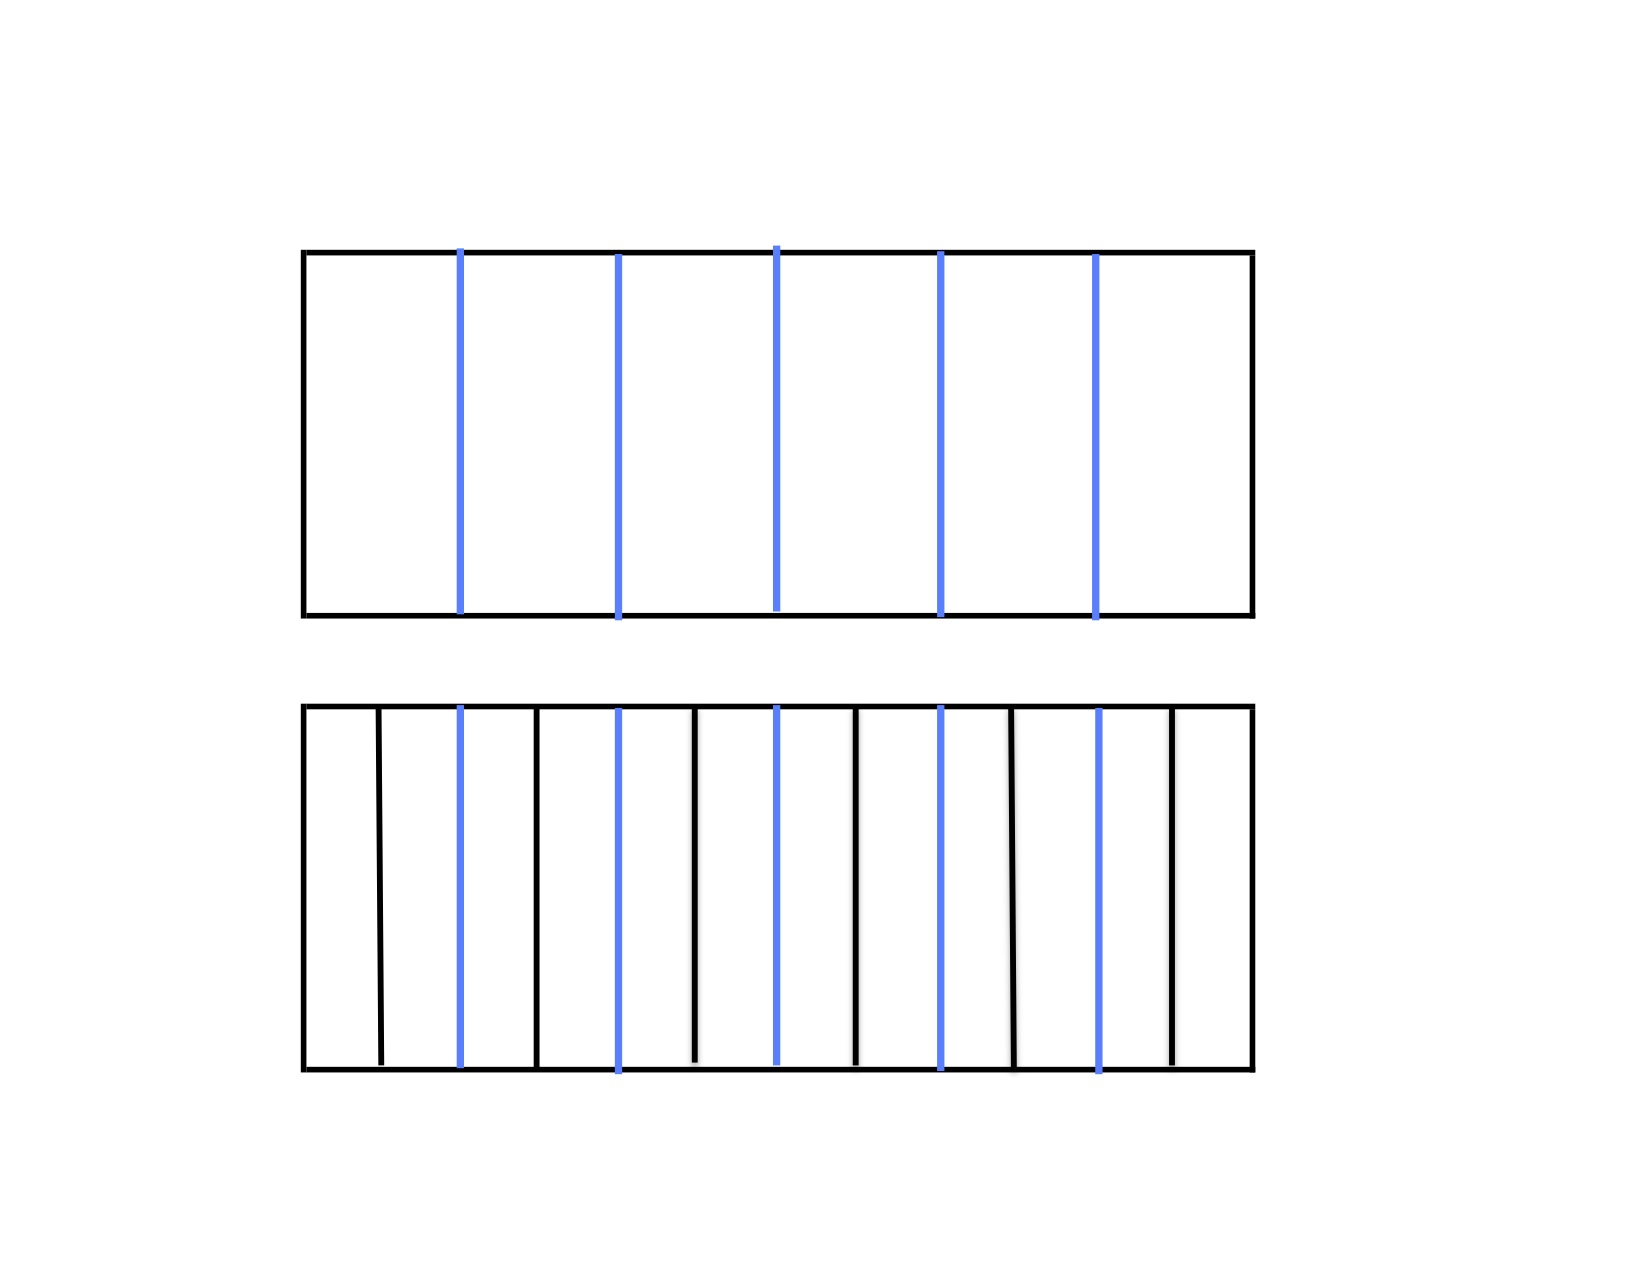 Are The Fractions Equivalent Students Partition Squares To Model